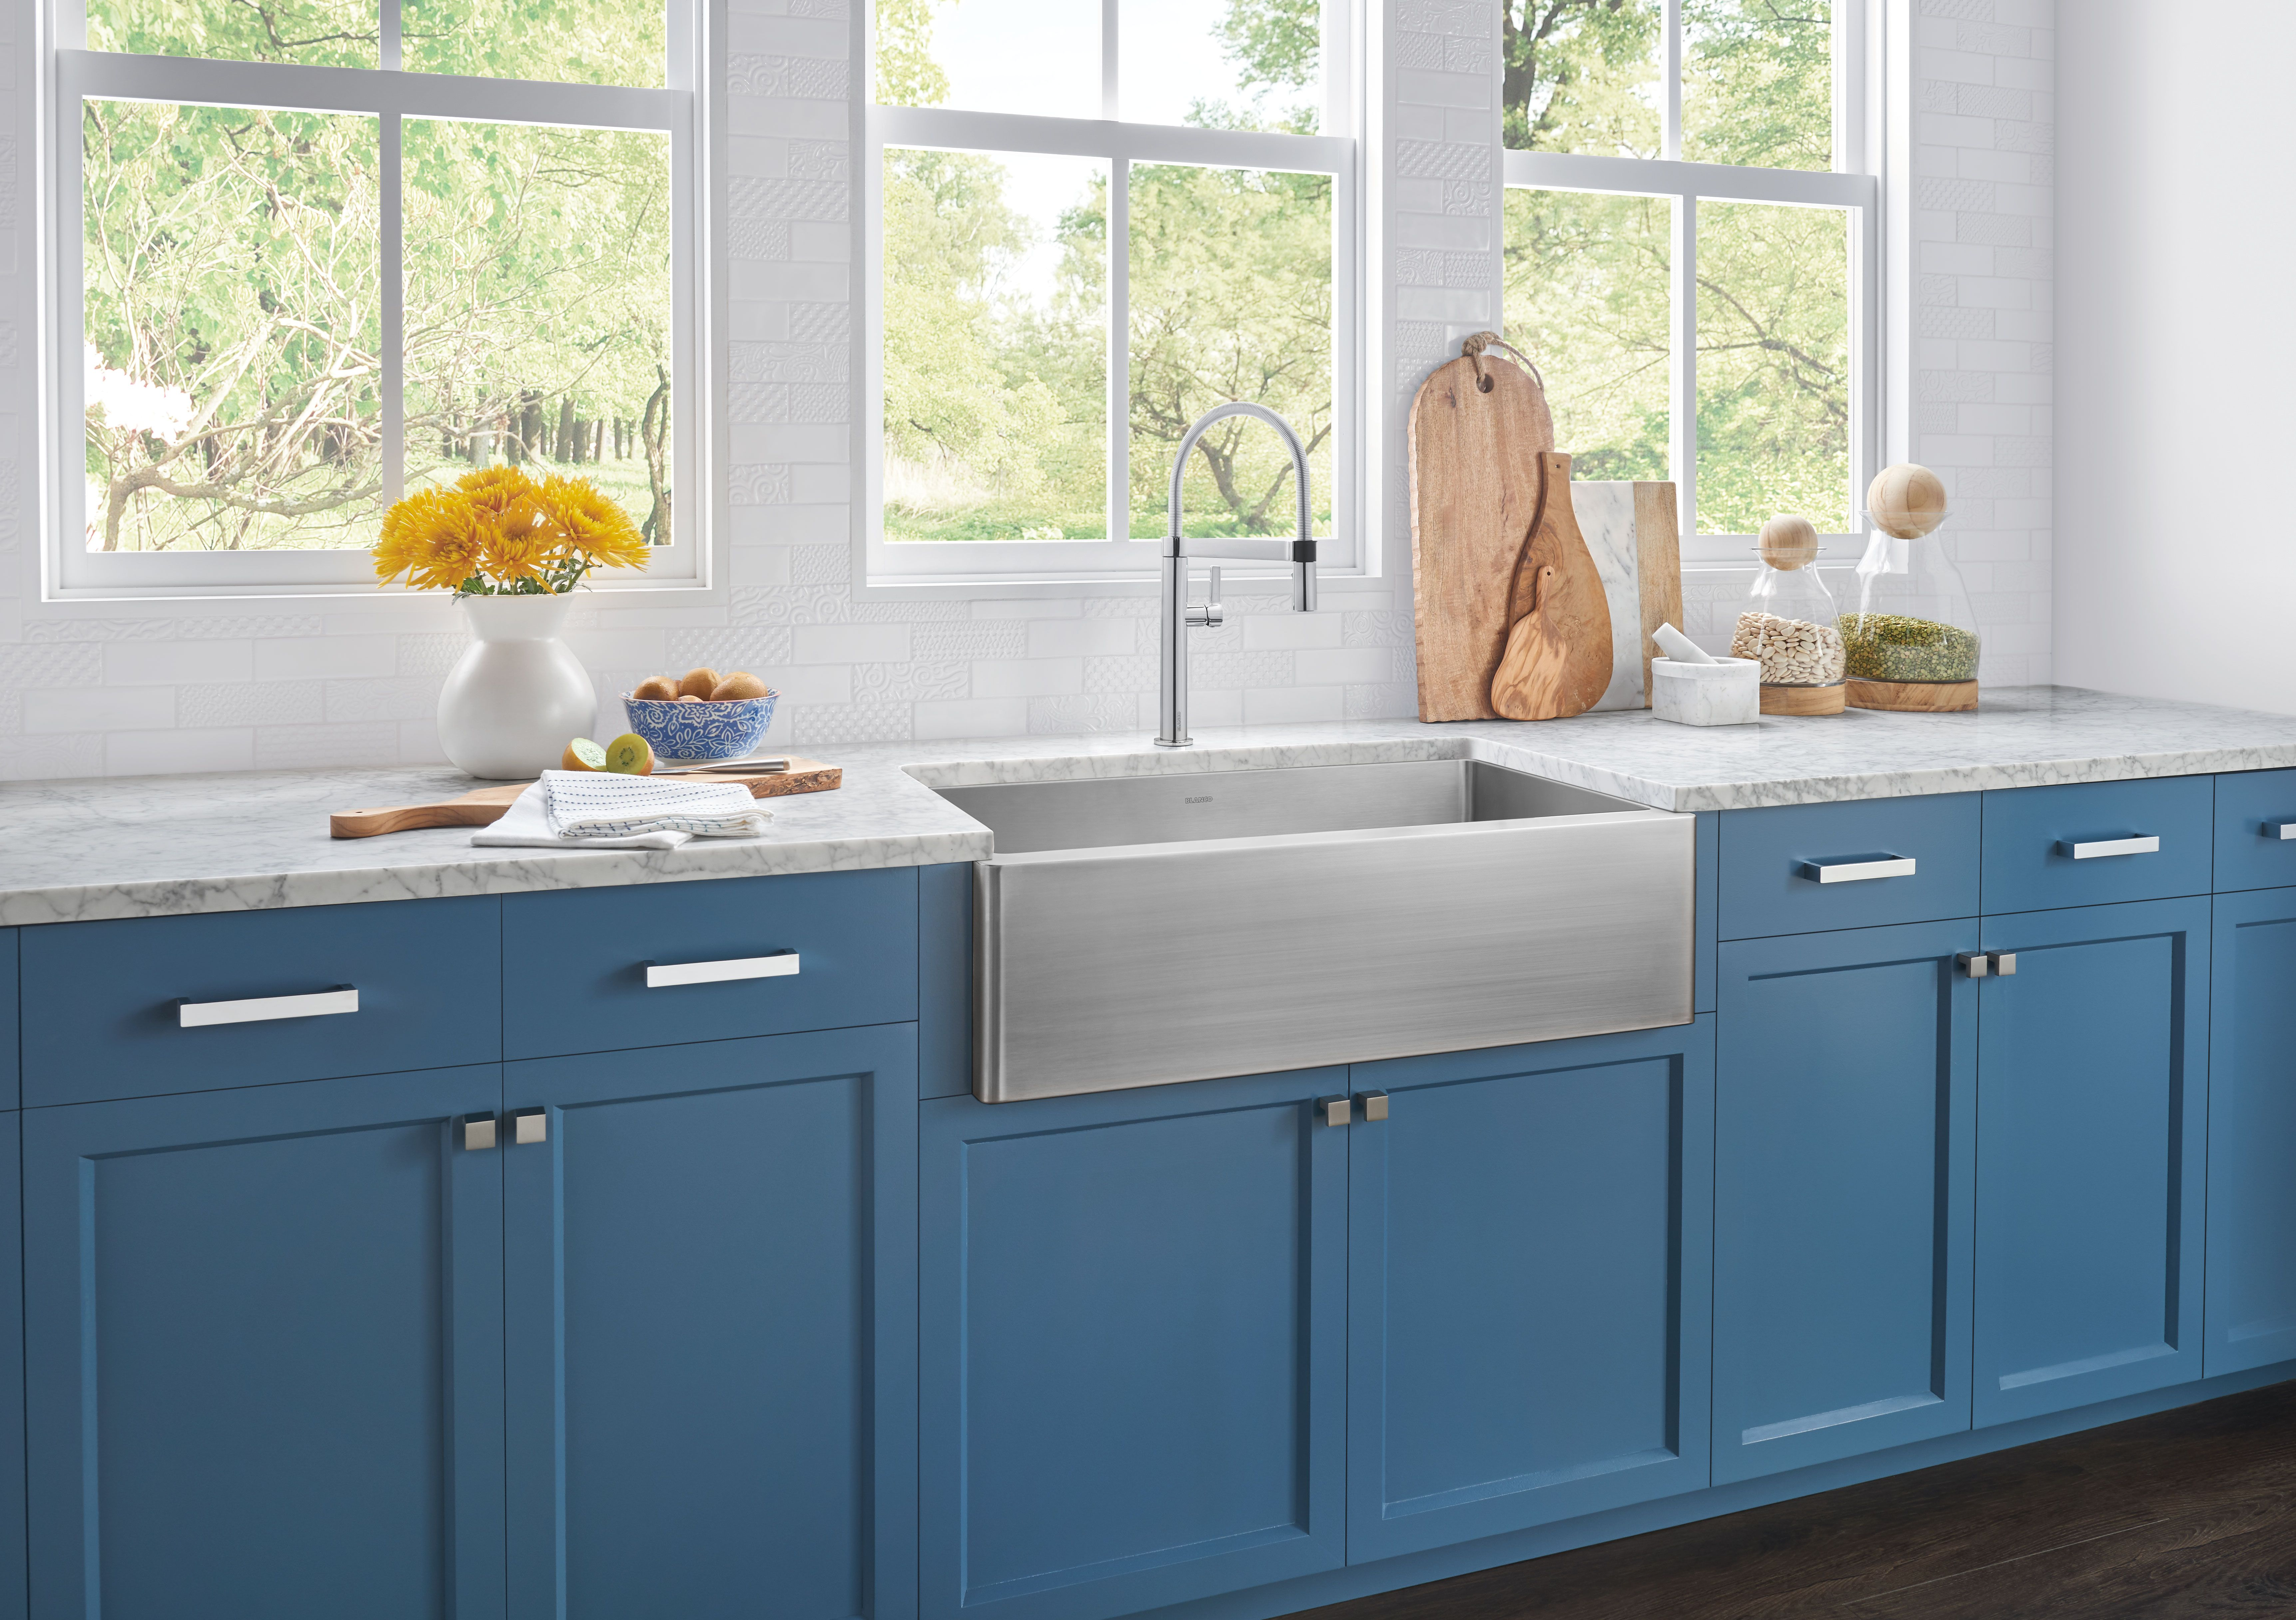 Farmhouse Stainless Steel Sinks Stainless Steel Farmhouse Sink